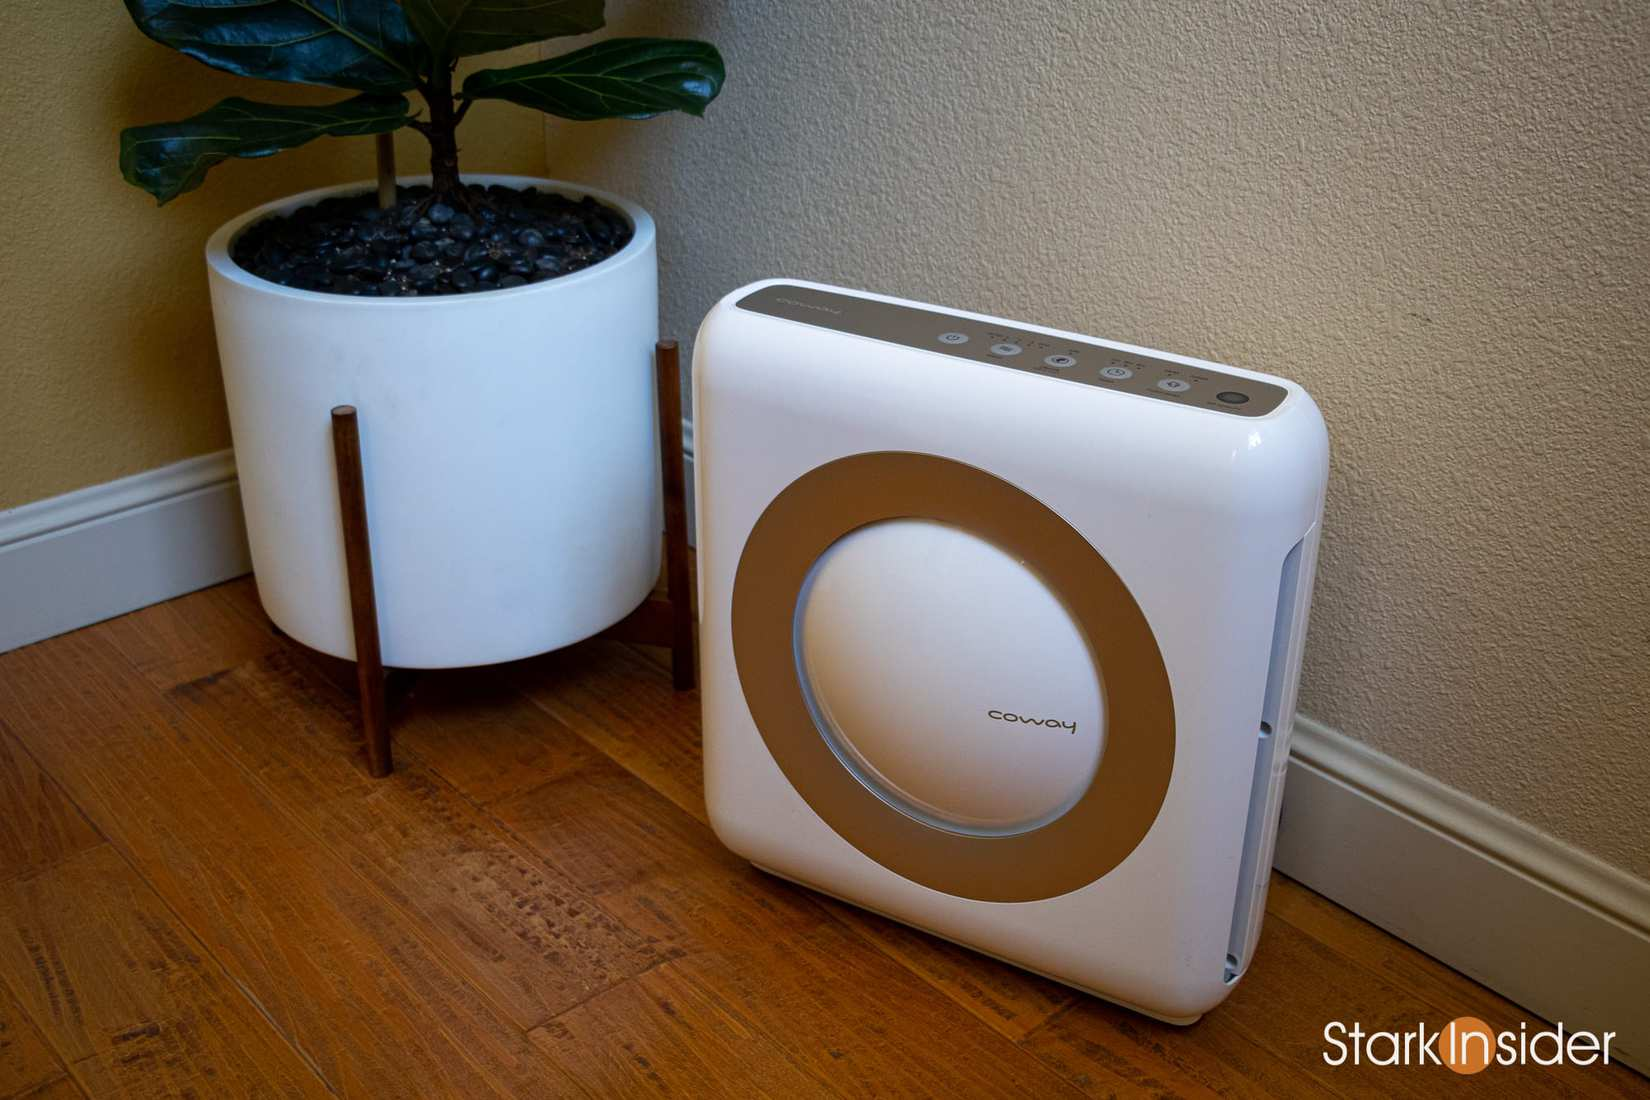 Best Air Purifier 2020 Coway Ap 1512hh Mighty Air Purifier With Hepa Filter Plus Thoughts From A Concerned Bay Area Wild Fire Resident Stark Insider,How To Make An Envelope With Origami Paper